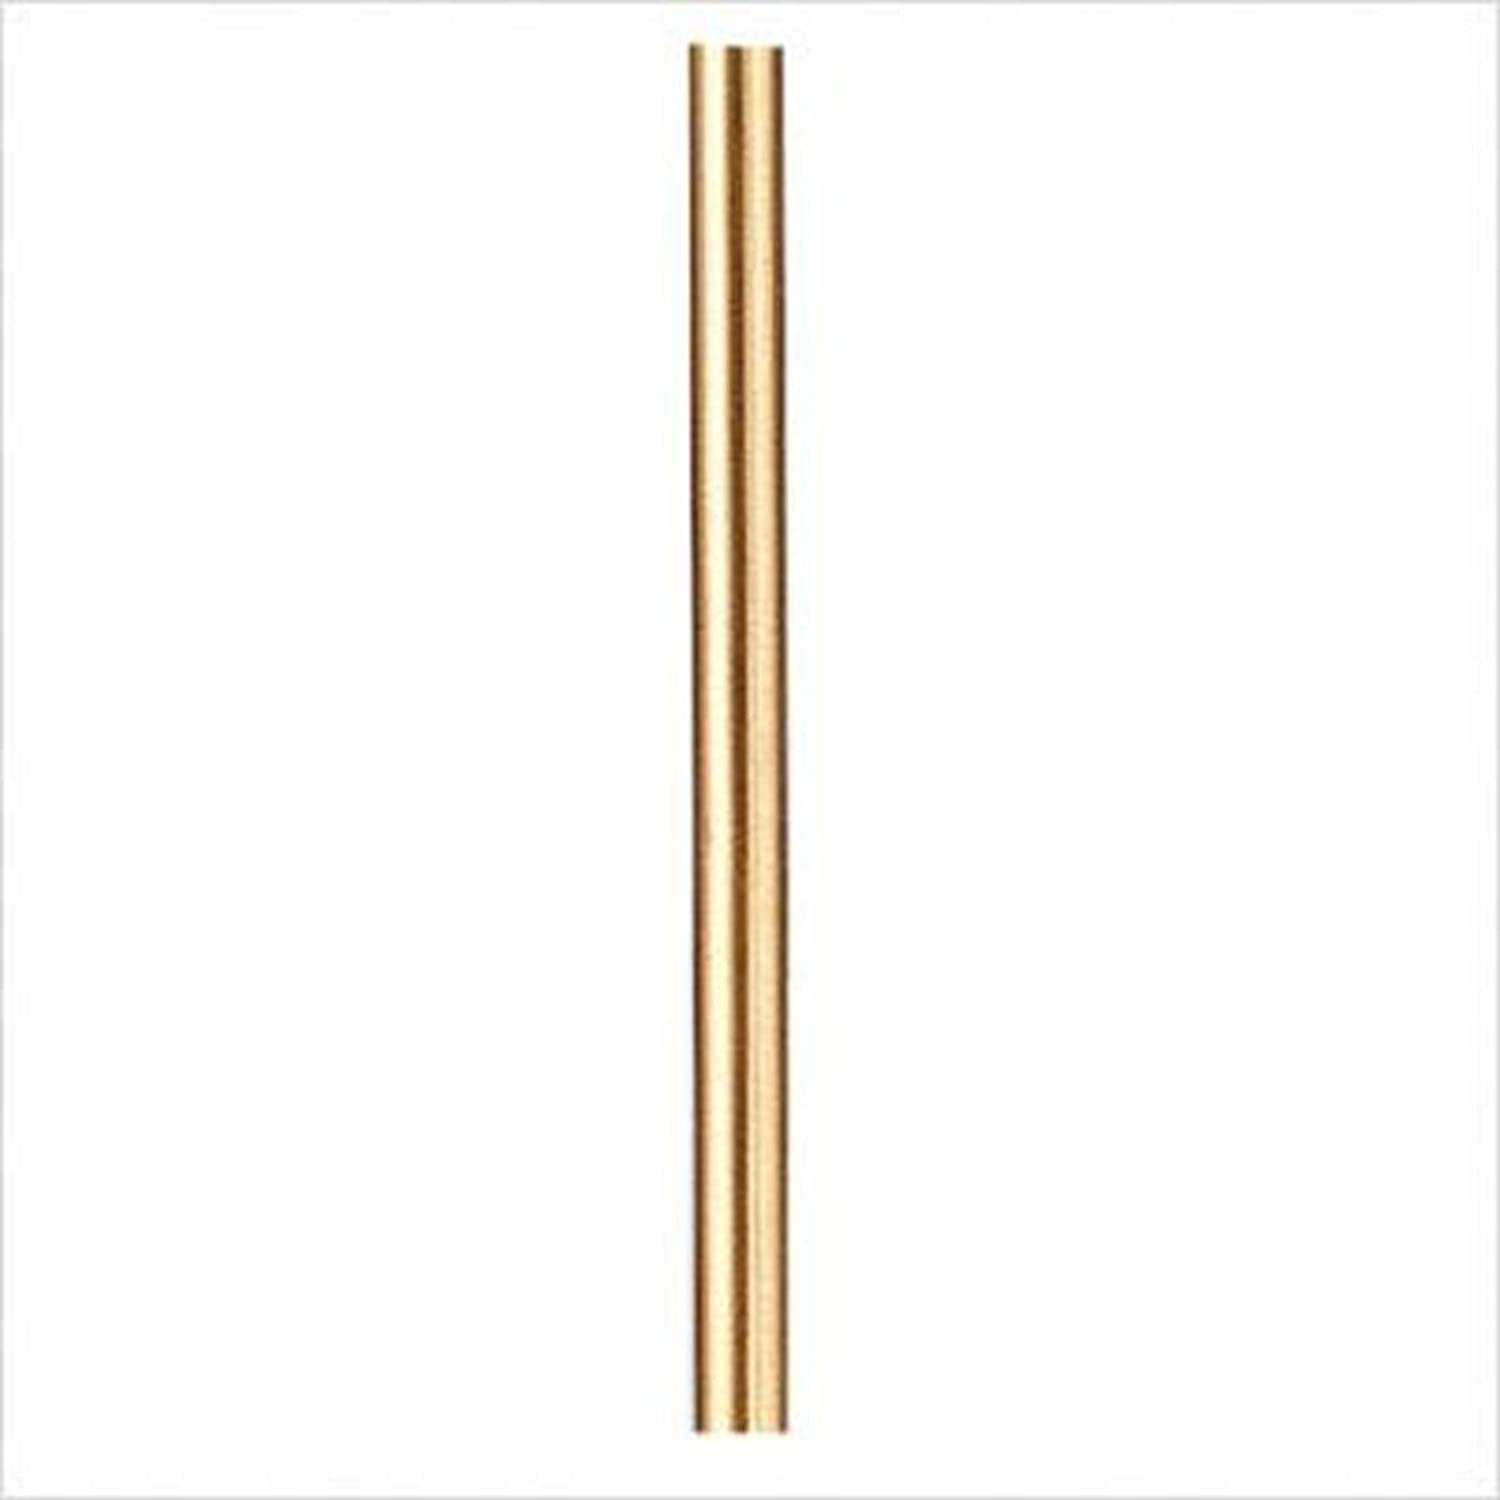 Savoy House 7-EXTLG-322 Extension Rod, Choose Finish: Warm Brass